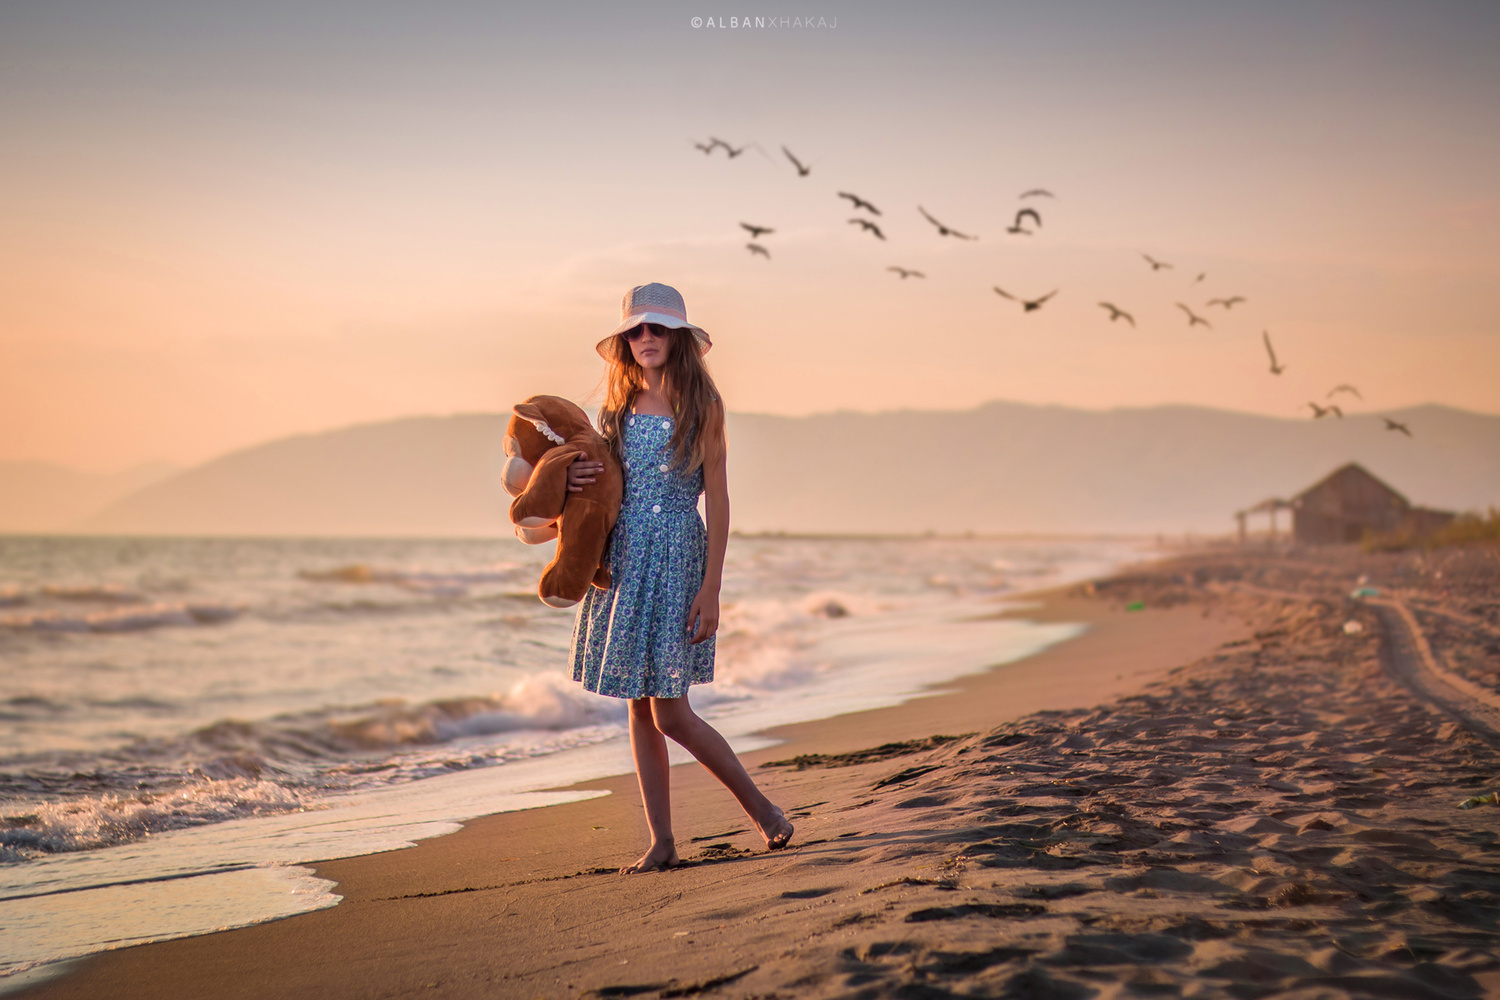 Girl in the beach by Alban Xhakaj